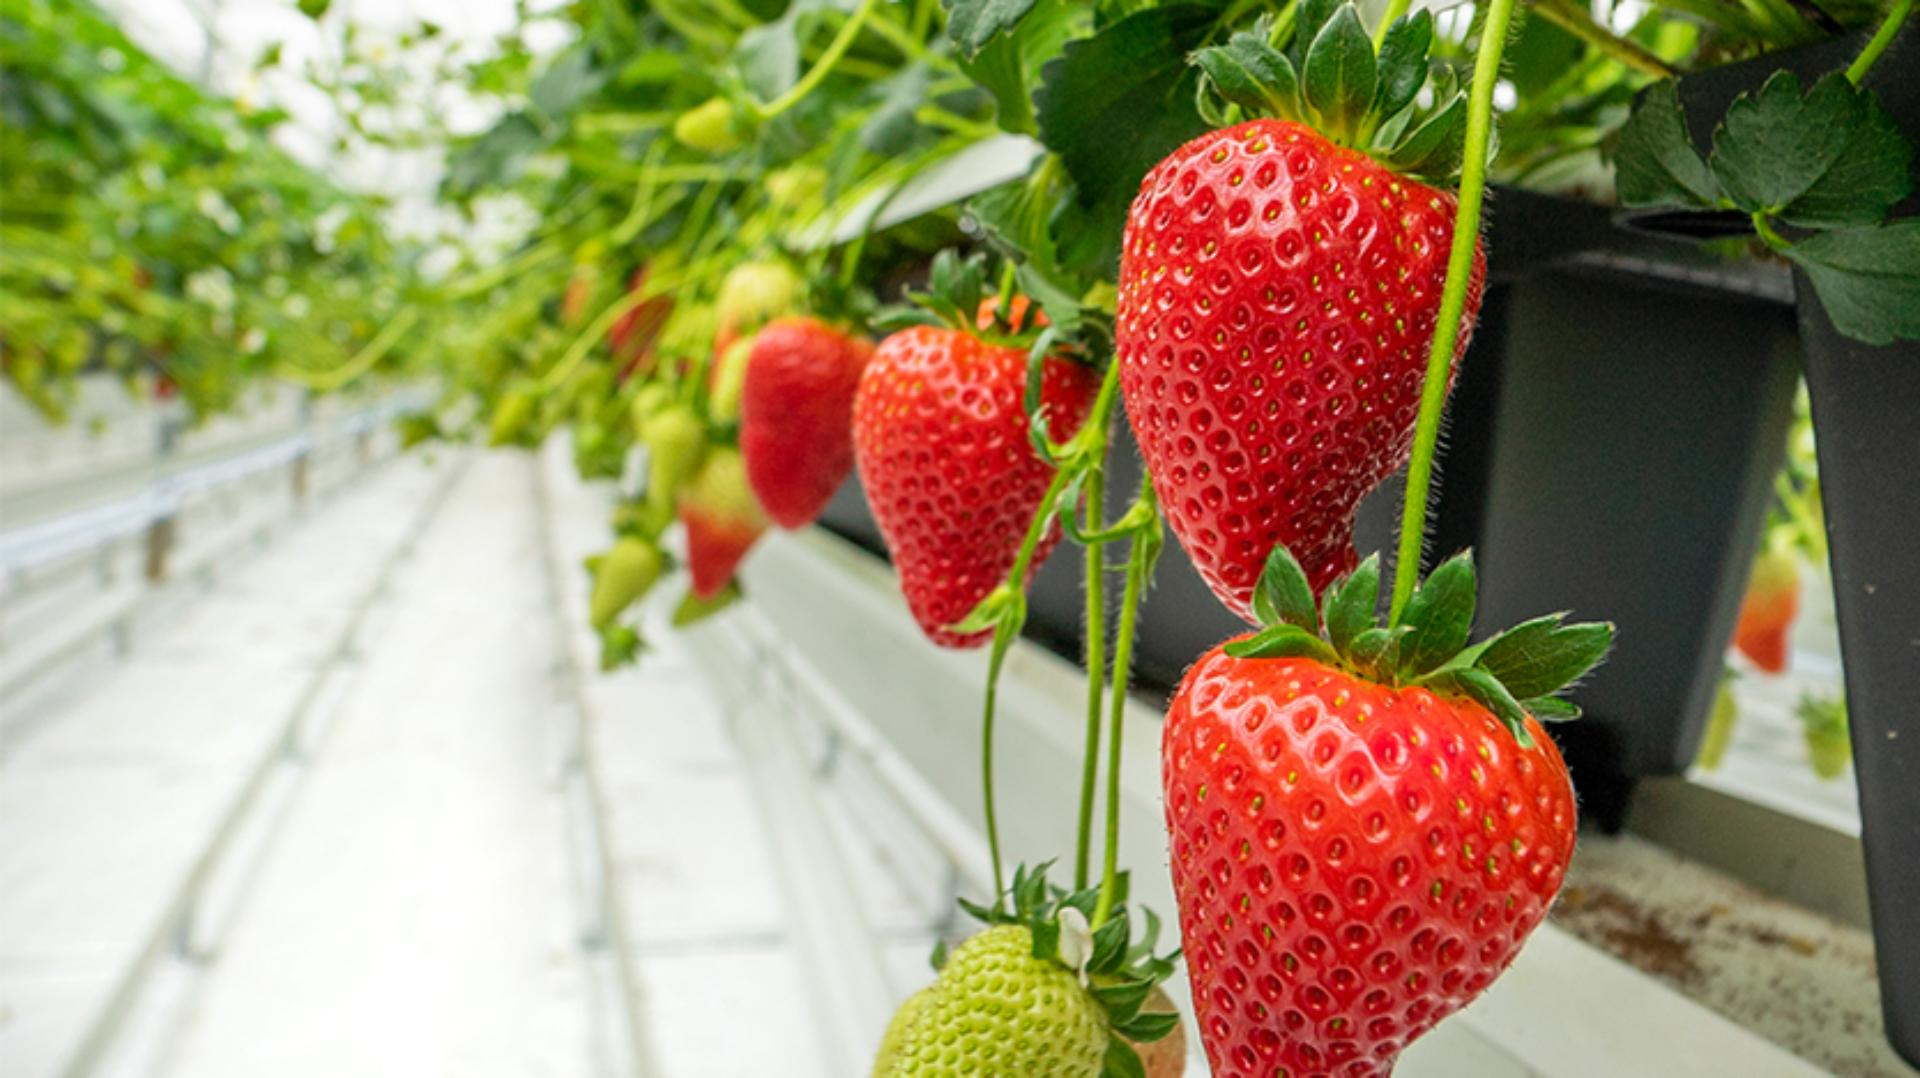 Dyson strawberries grown in the greenhouses in Lincolnshire